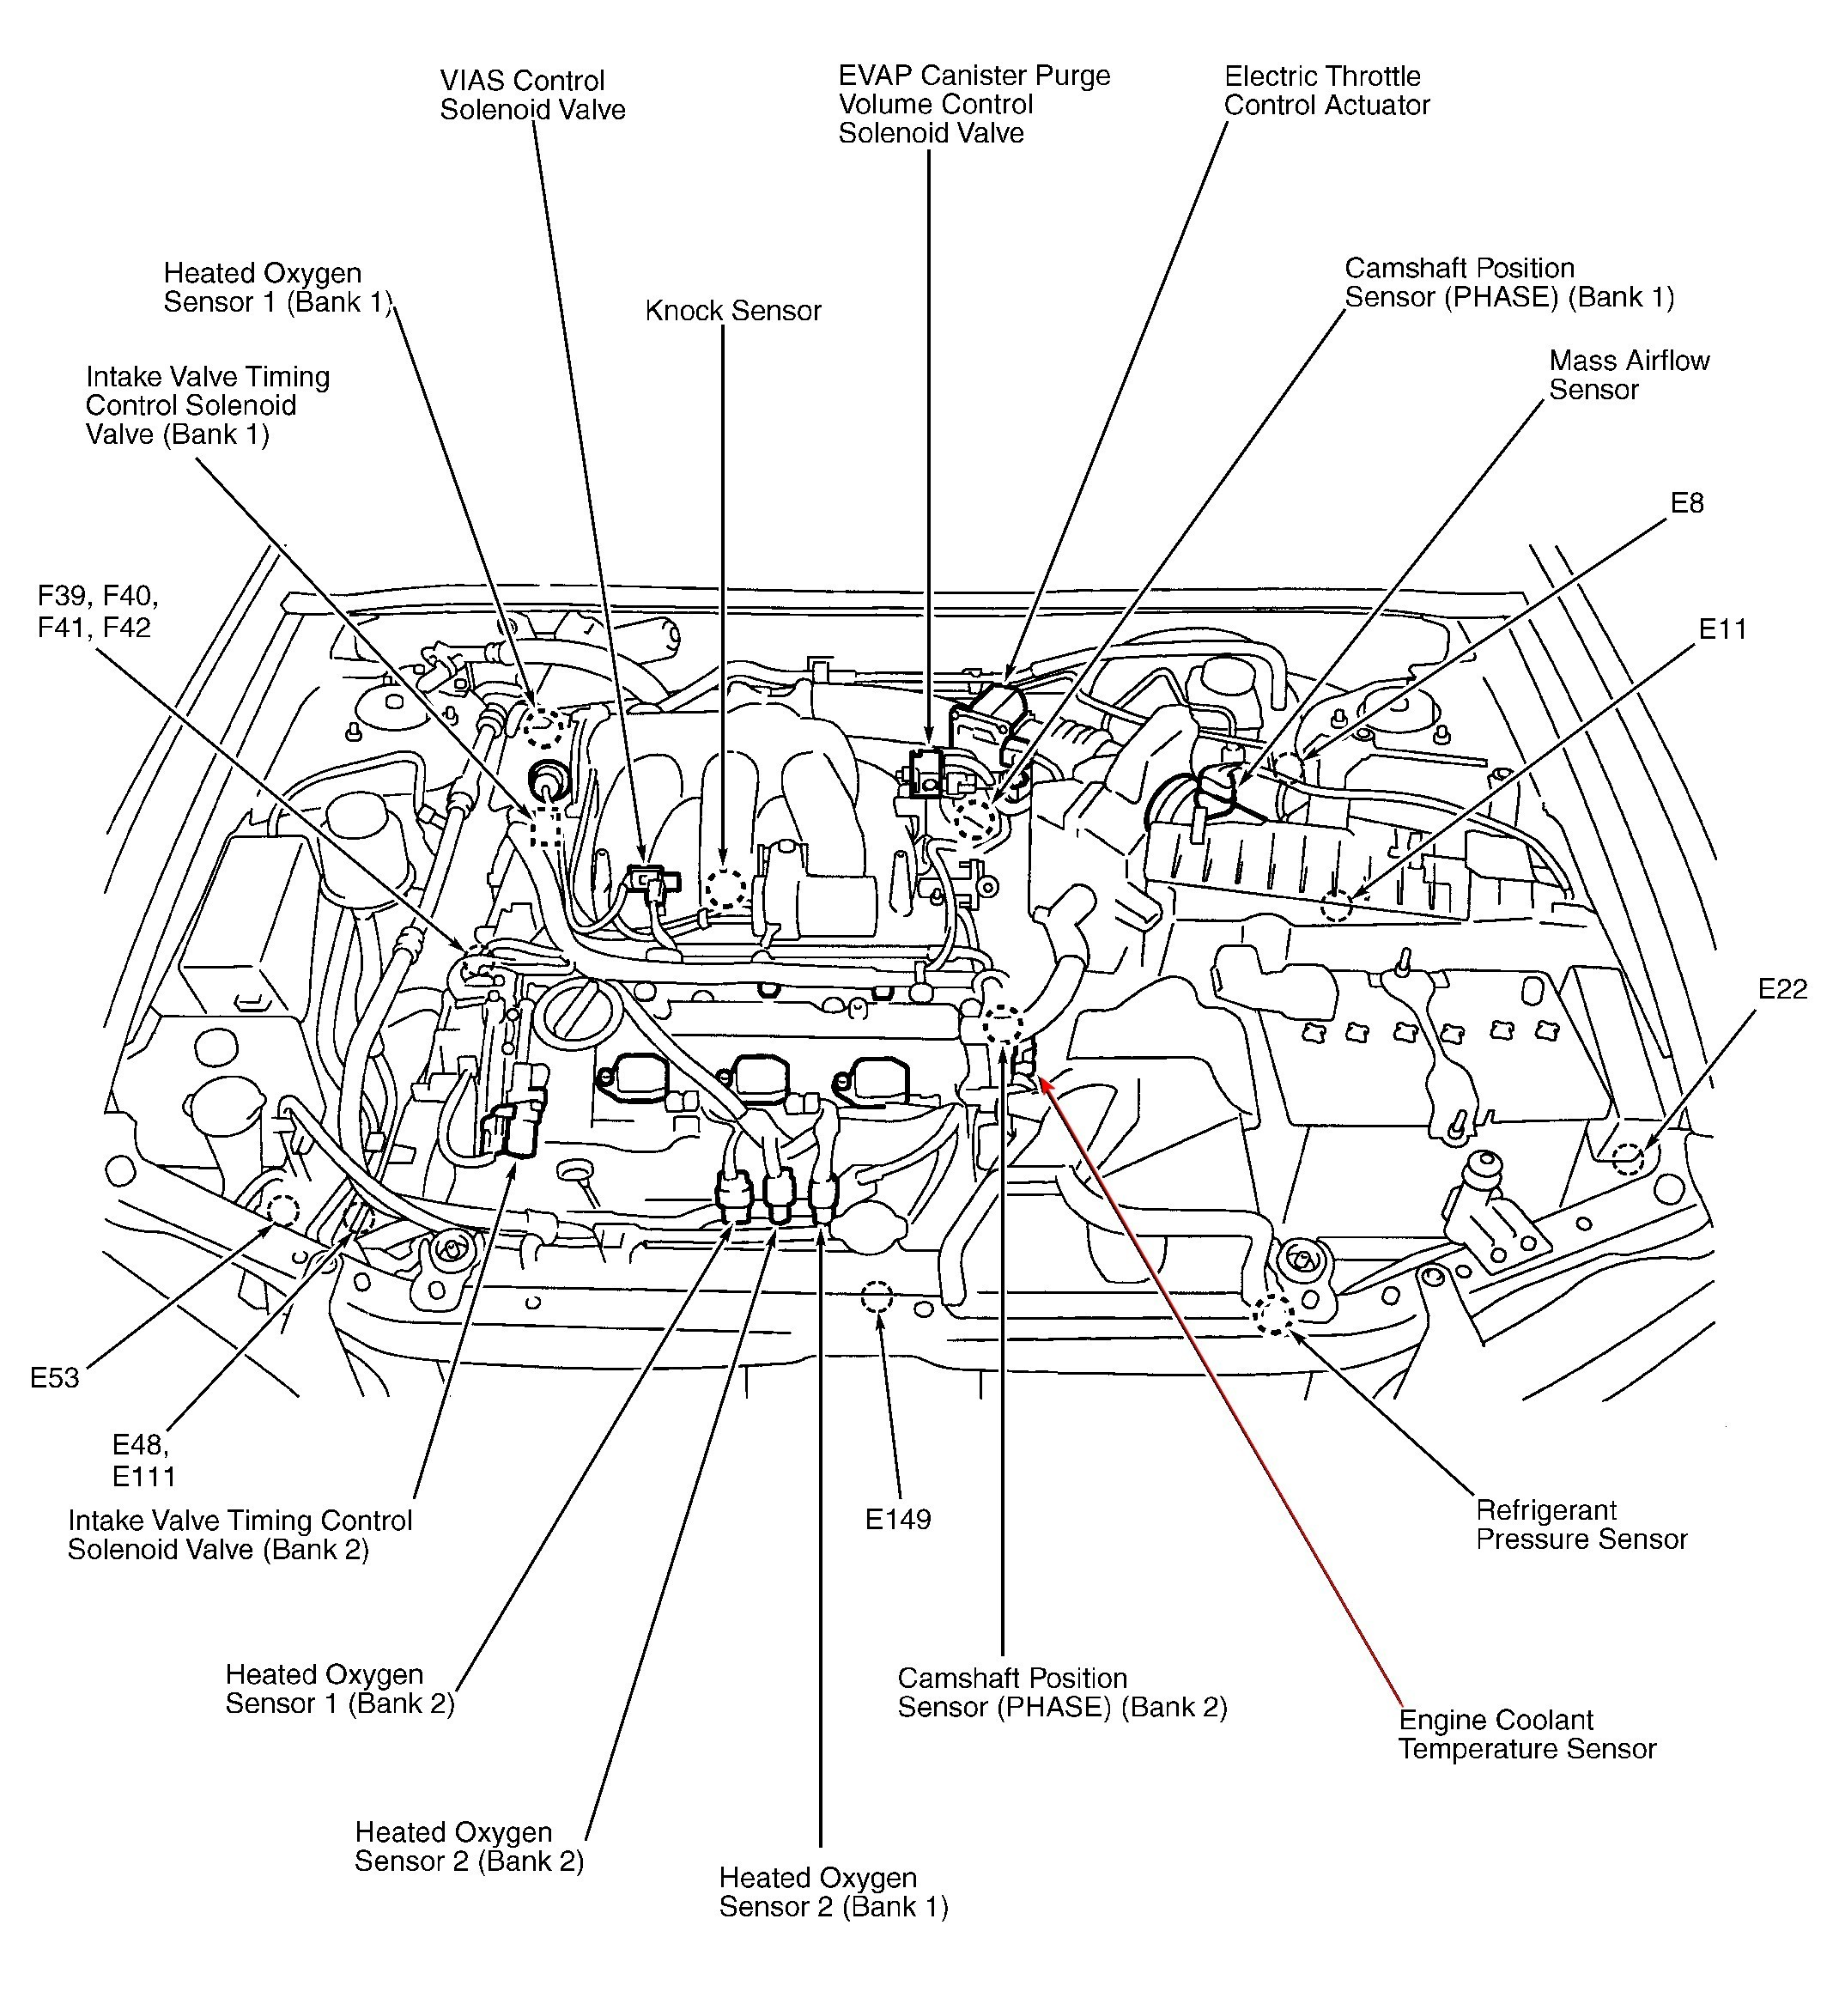 medium resolution of wiring diagram as well 1989 jeep cherokee vacuum line diagram jeep cj7 vacuum diagram as well jeep grand cherokee fuel line diagram